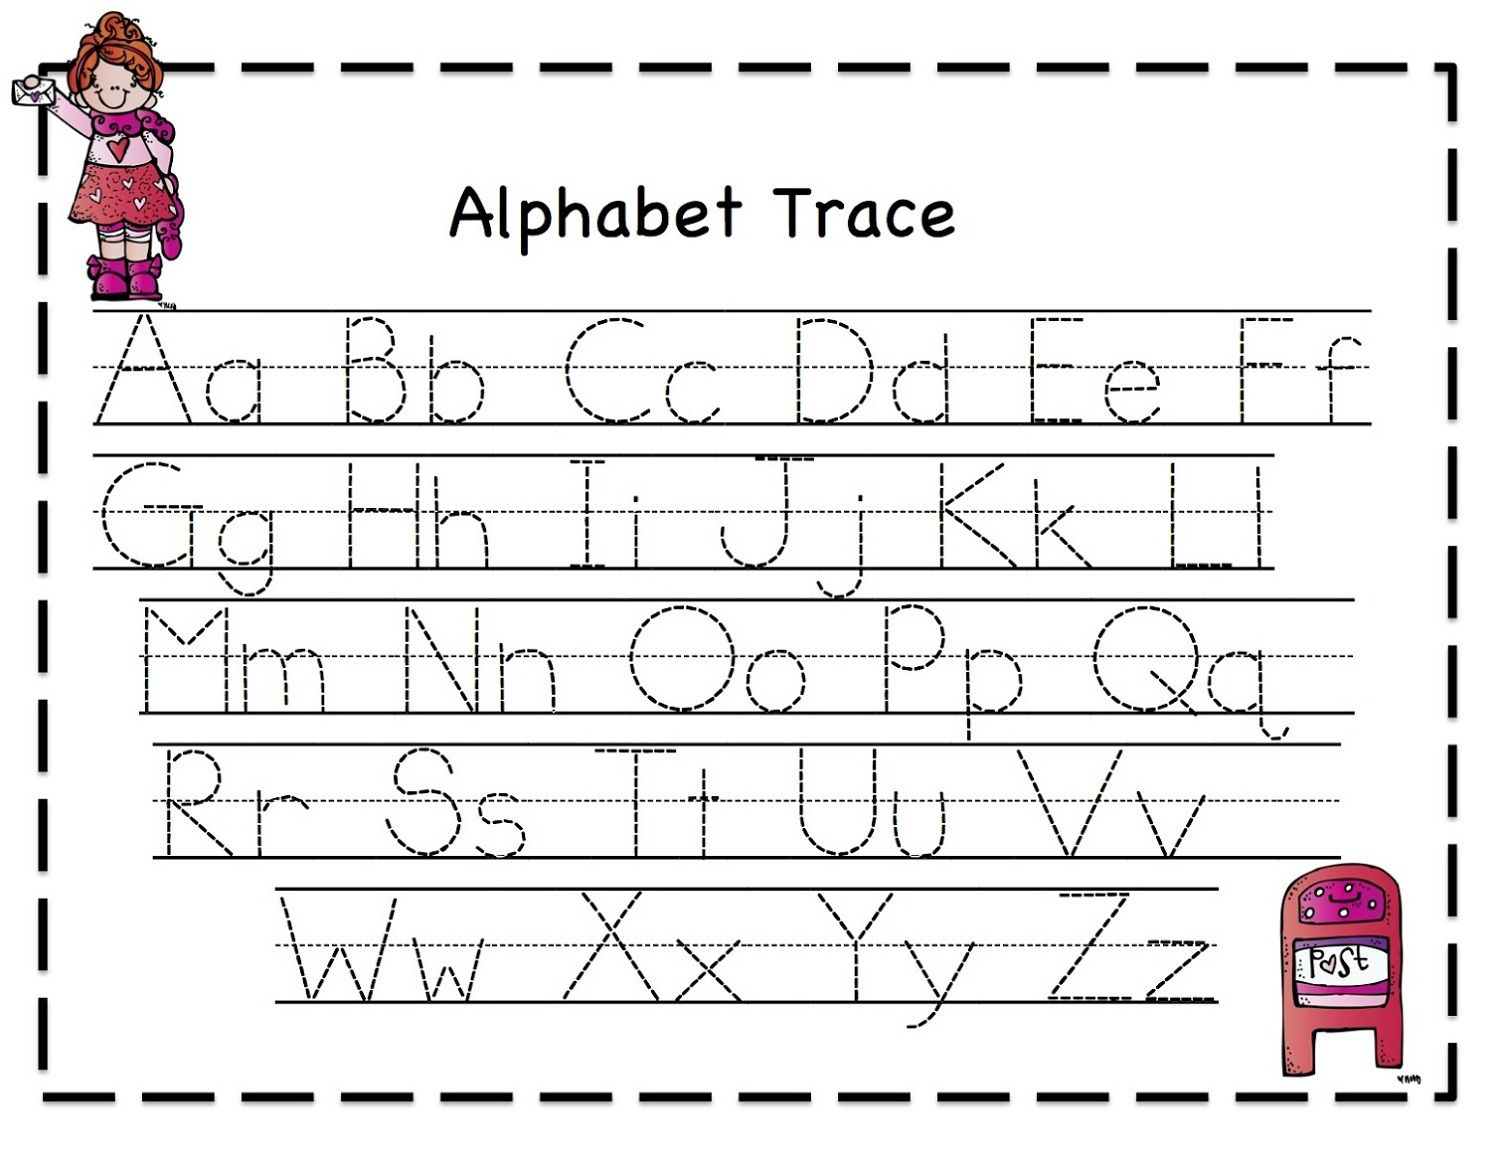 Worksheets Pre K Alphabet Worksheets tracing letters for girl activities pinterest alphabet worksheets kids